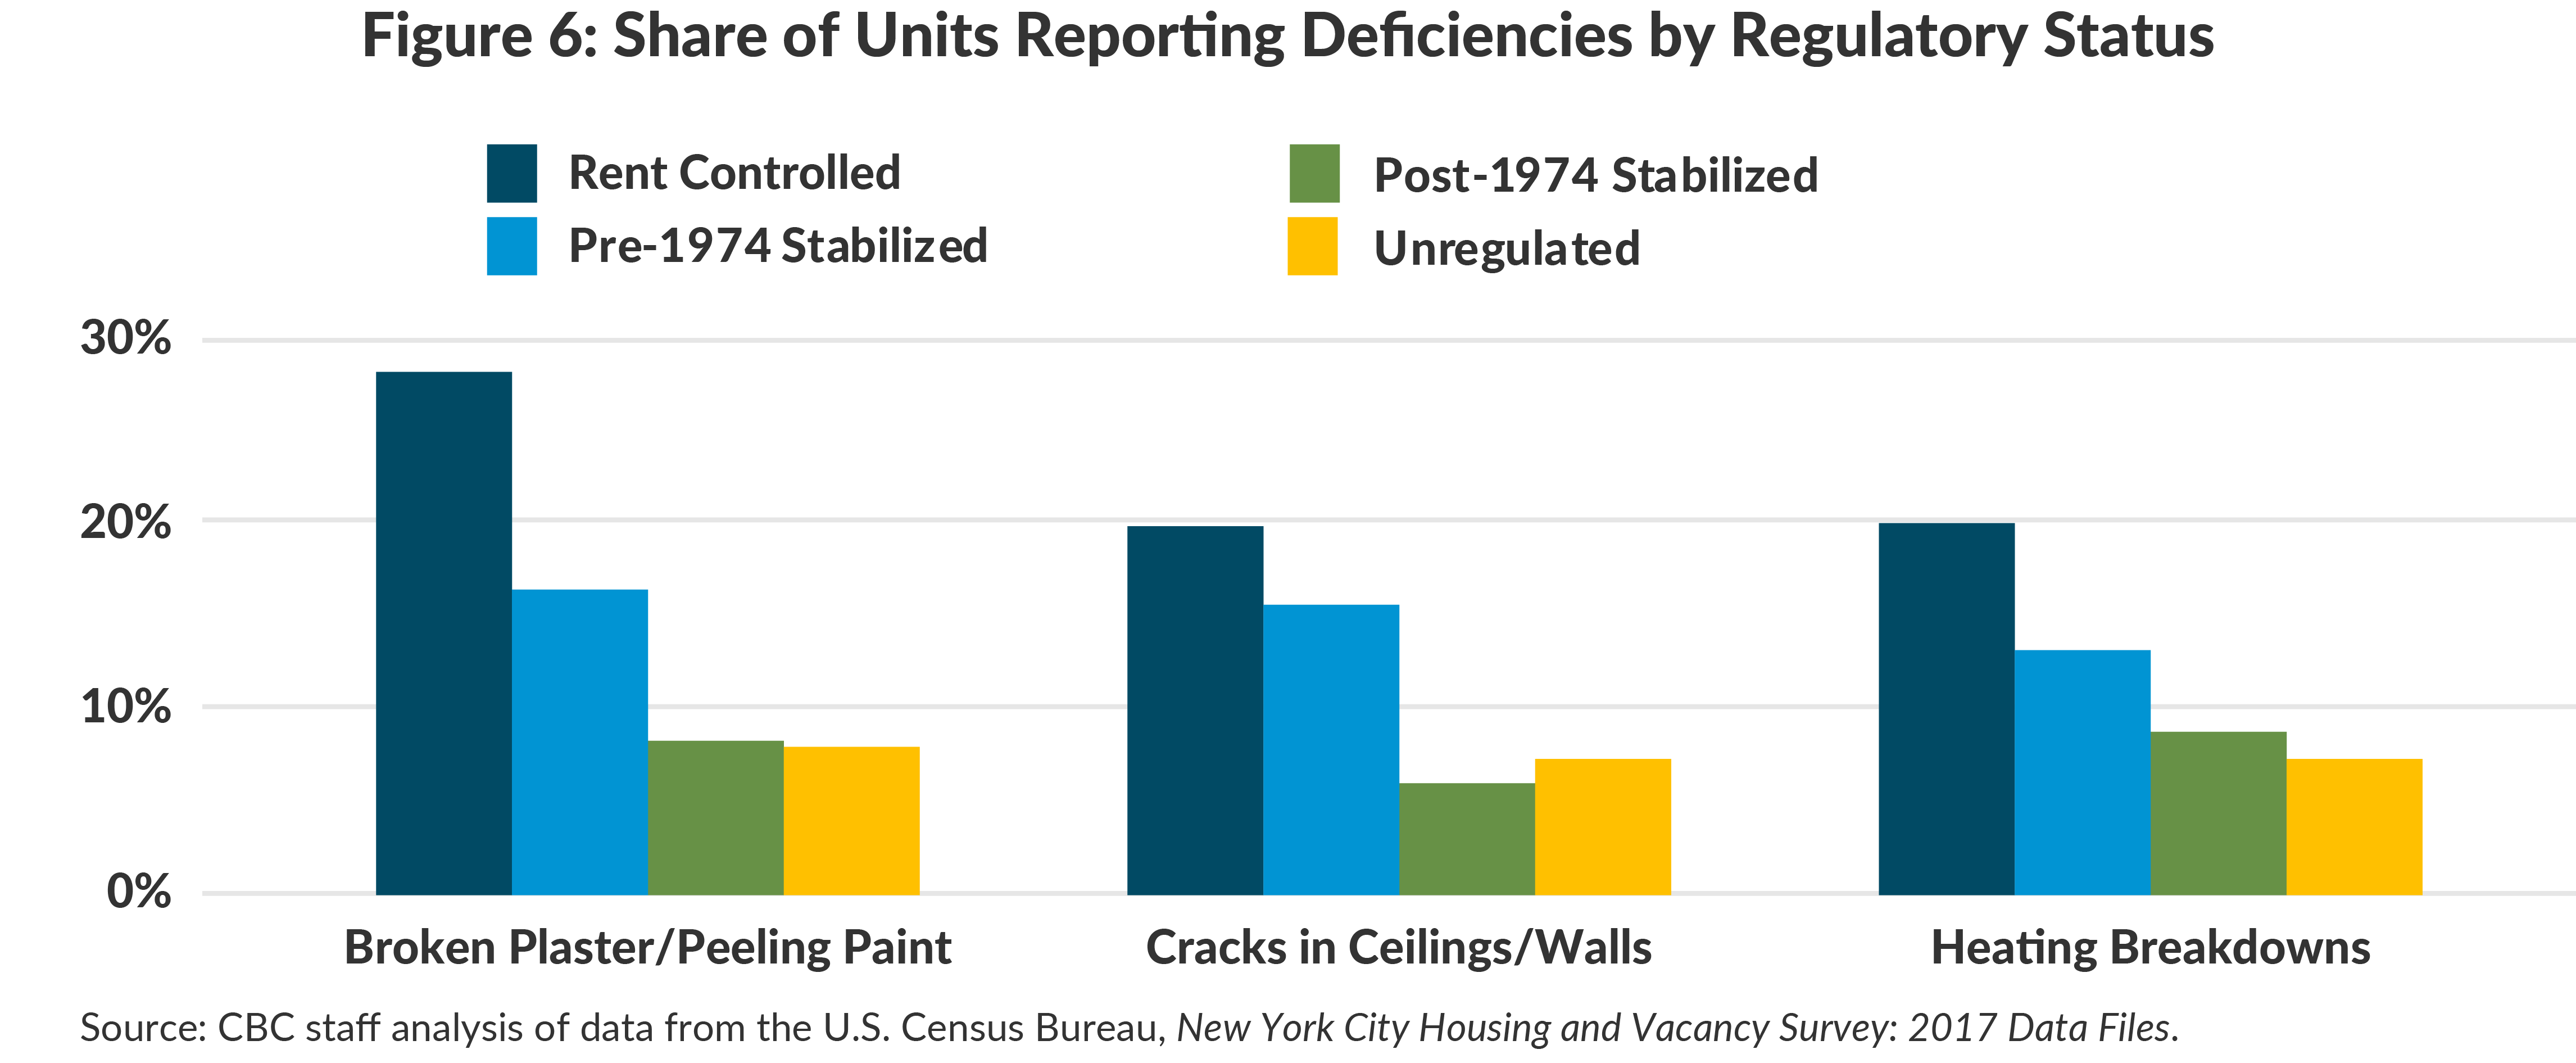 Figure 6: Share of Units Reporting Deficiencies by Regulatory Status